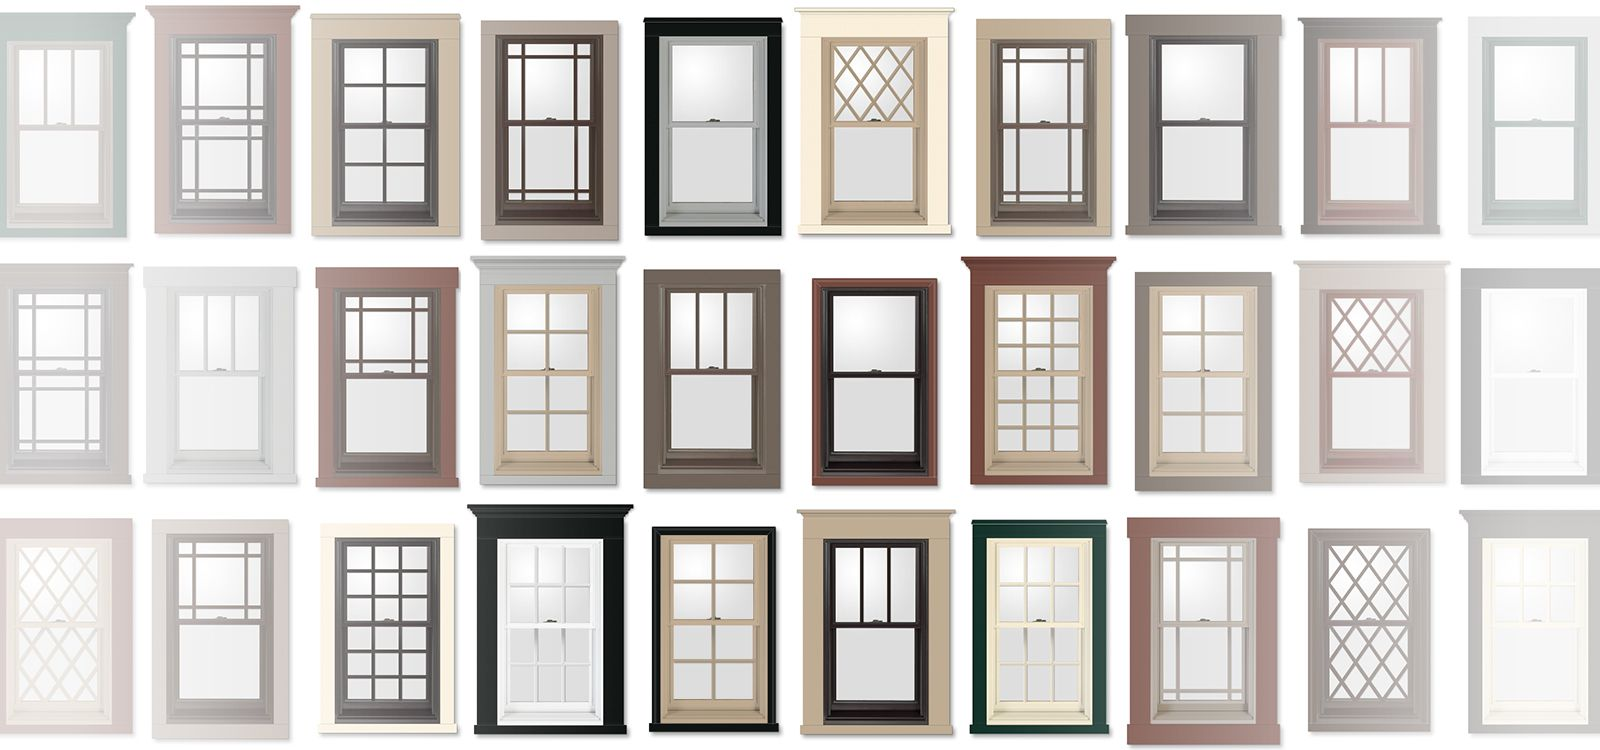 Andersen windows and patio doors 1 in quality and used for House front window design